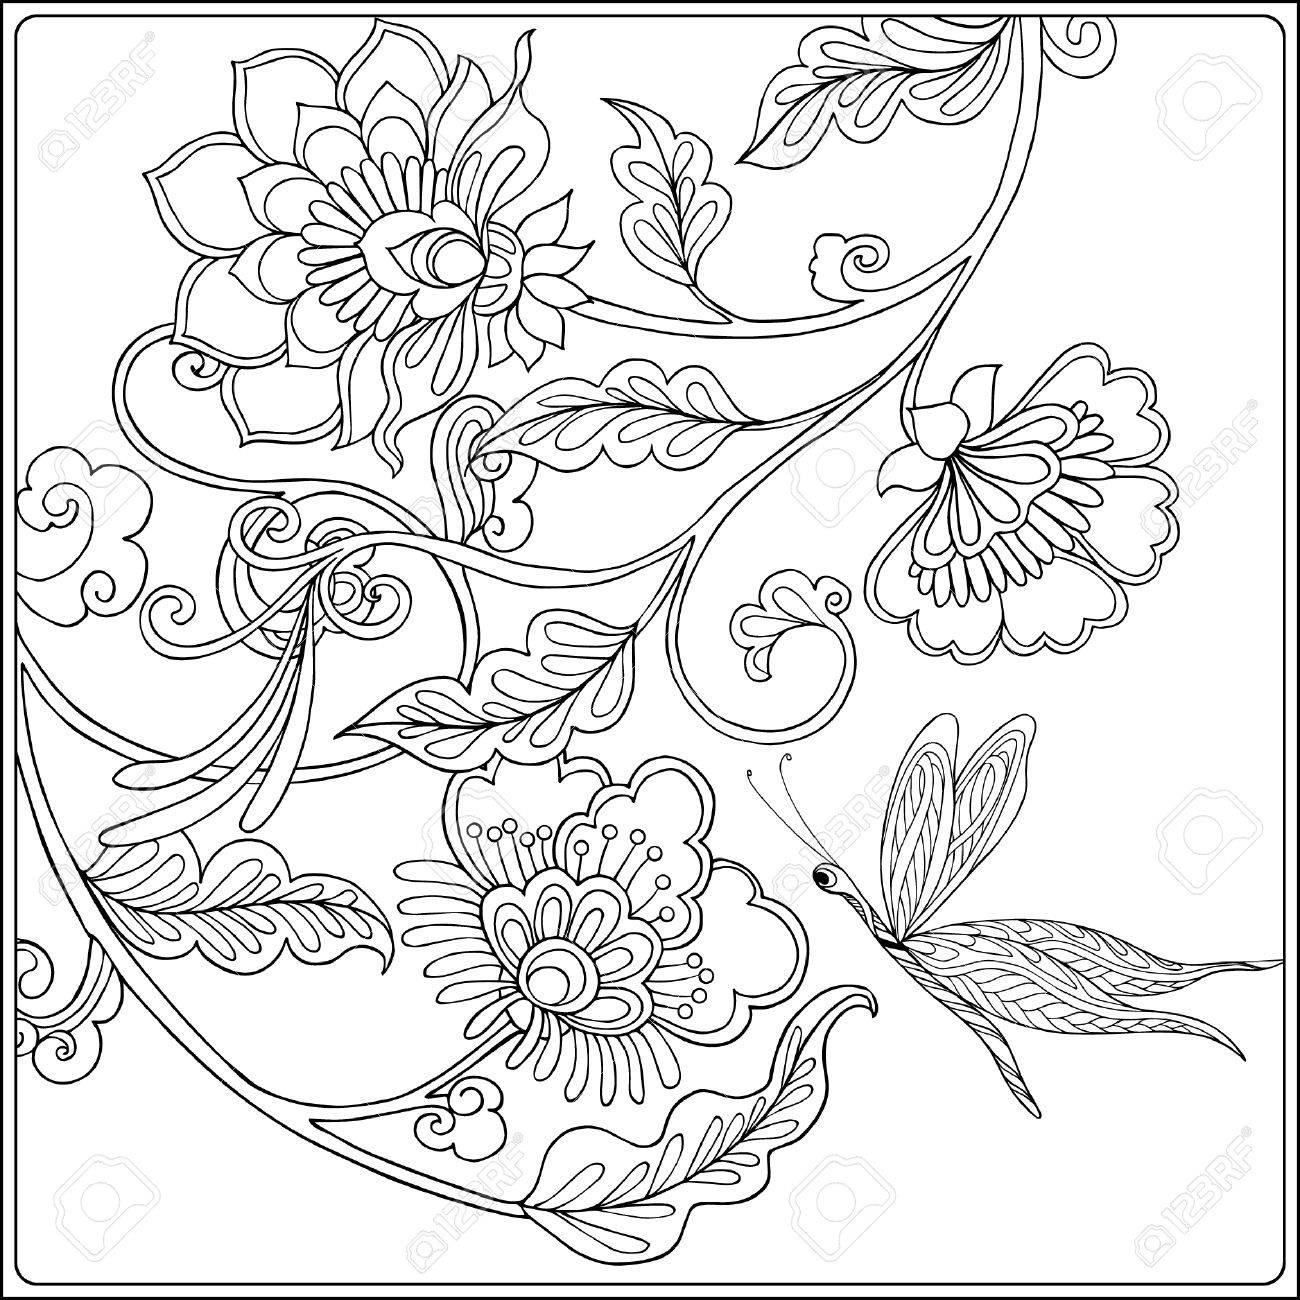 1300x1300 Decorative Flowers, Birds And Butterflies. Coloring Book